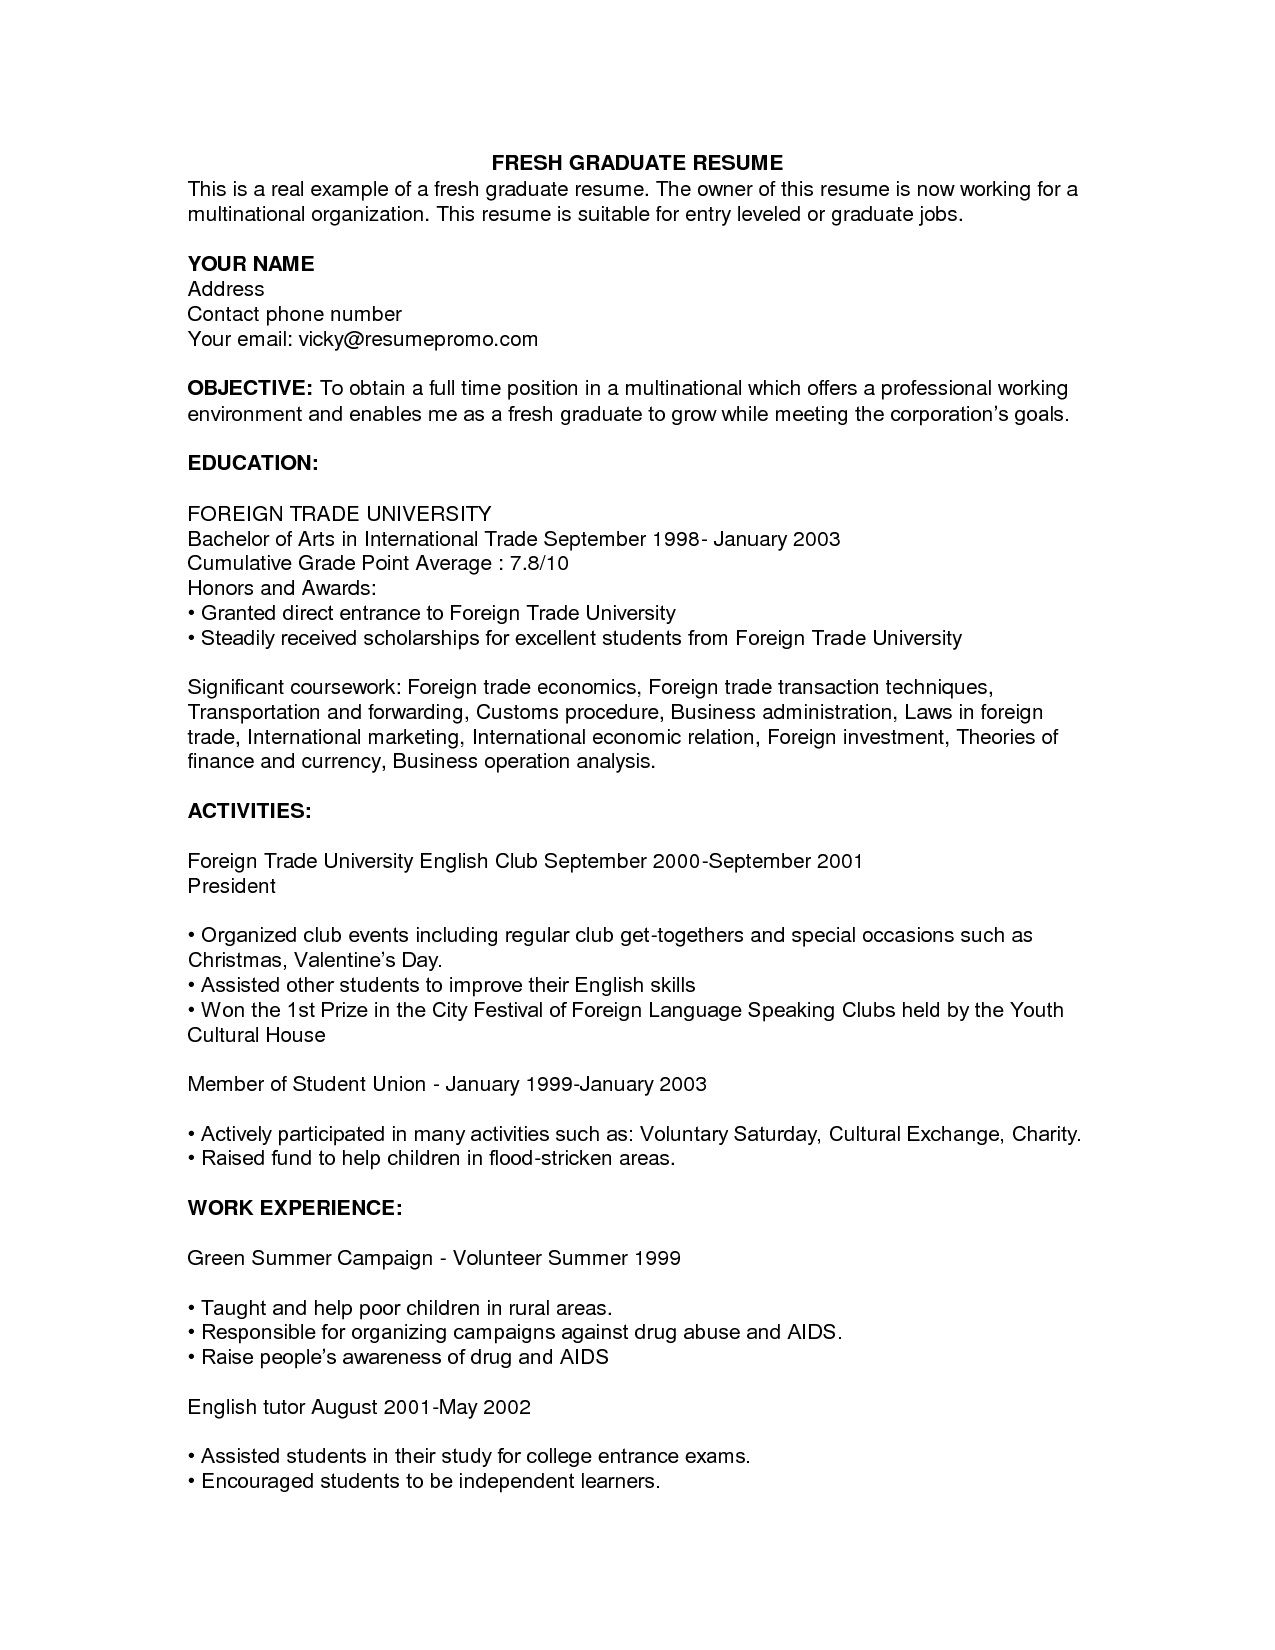 Job Resume Samples  How To Format A Resume Resume